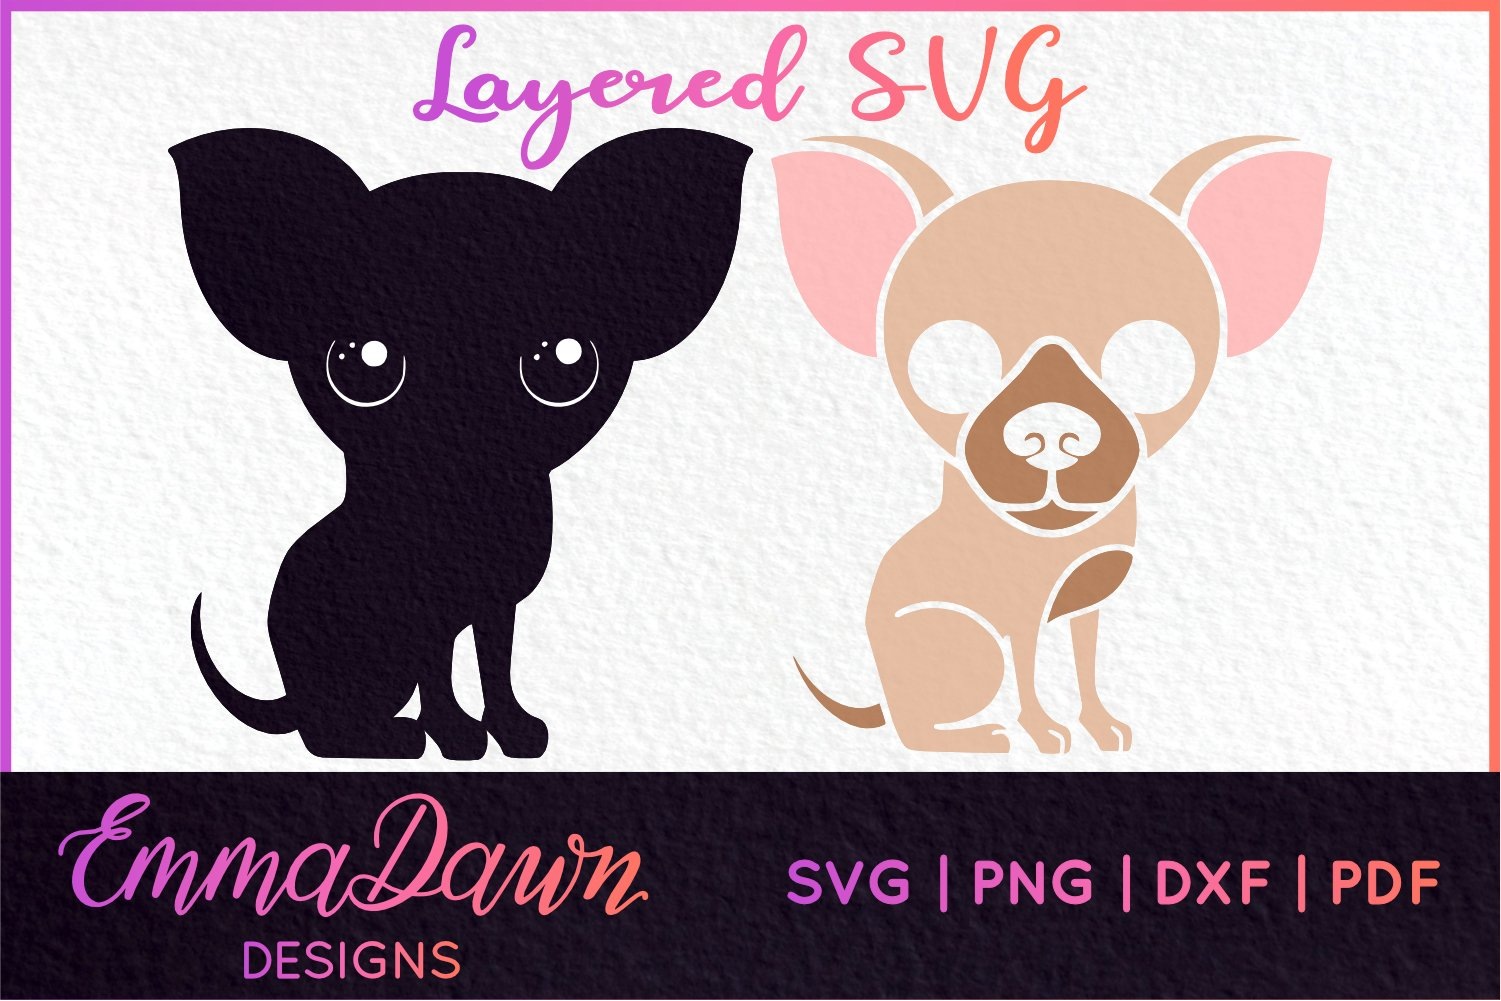 8 CHIHUAHUA DESIGNS SVG, DXF, PNG, PDF, FCM example image 2